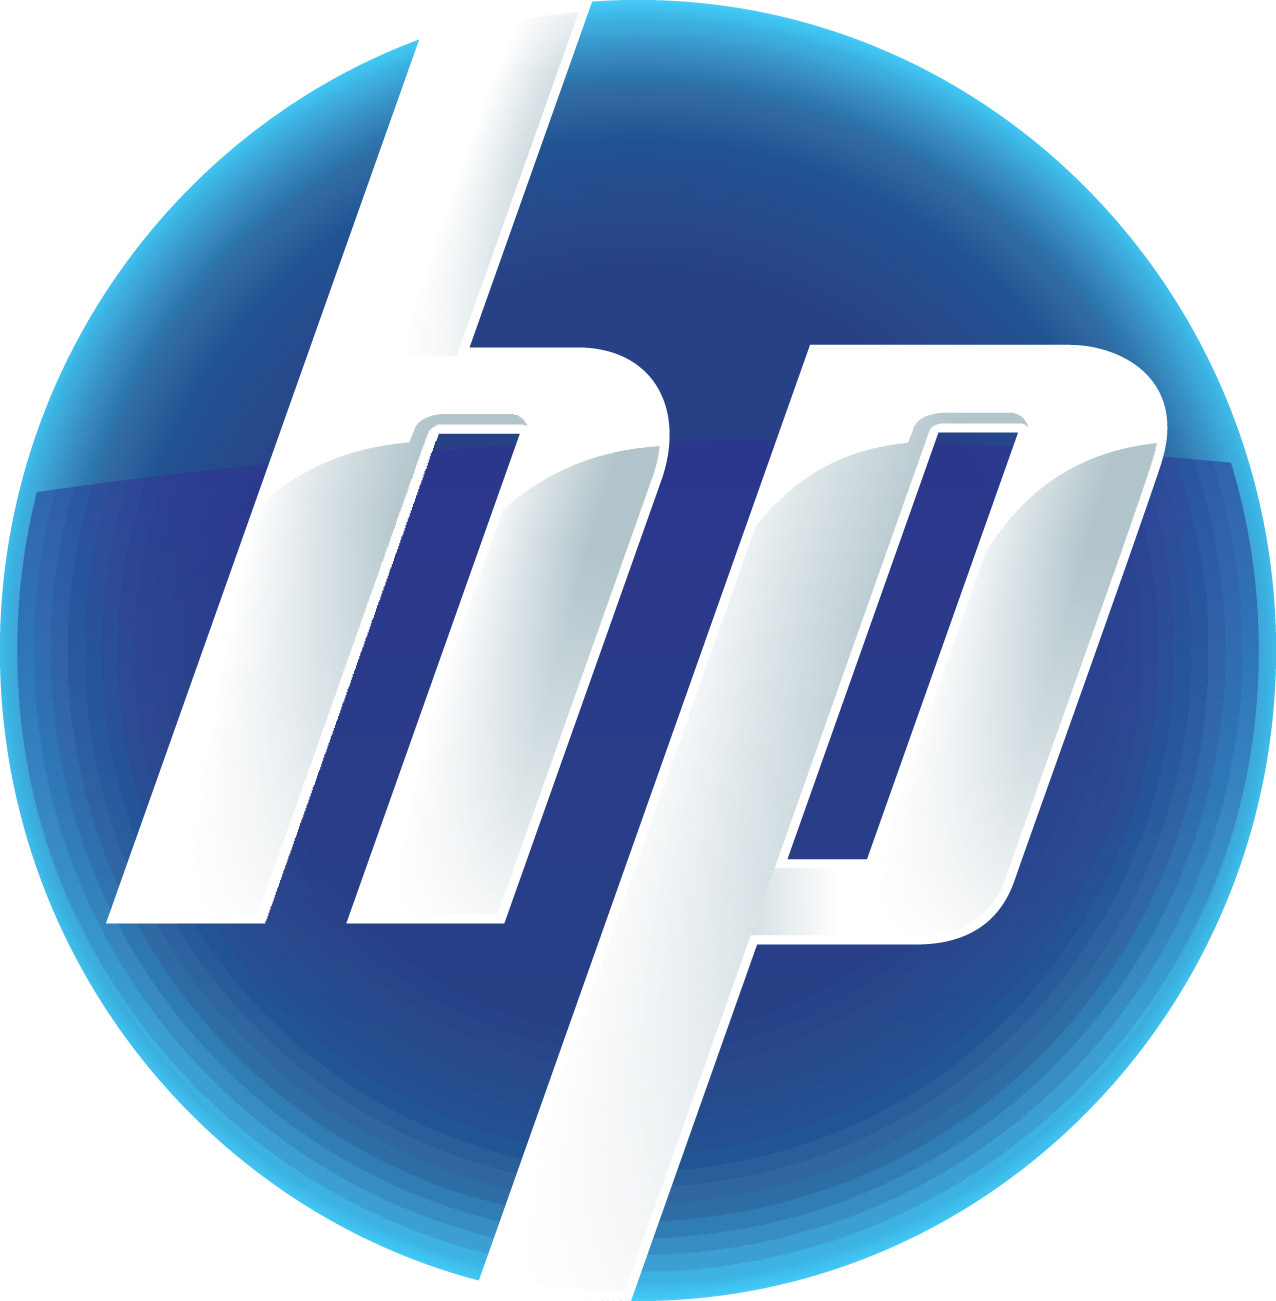 HP_NEW_logo.jpg